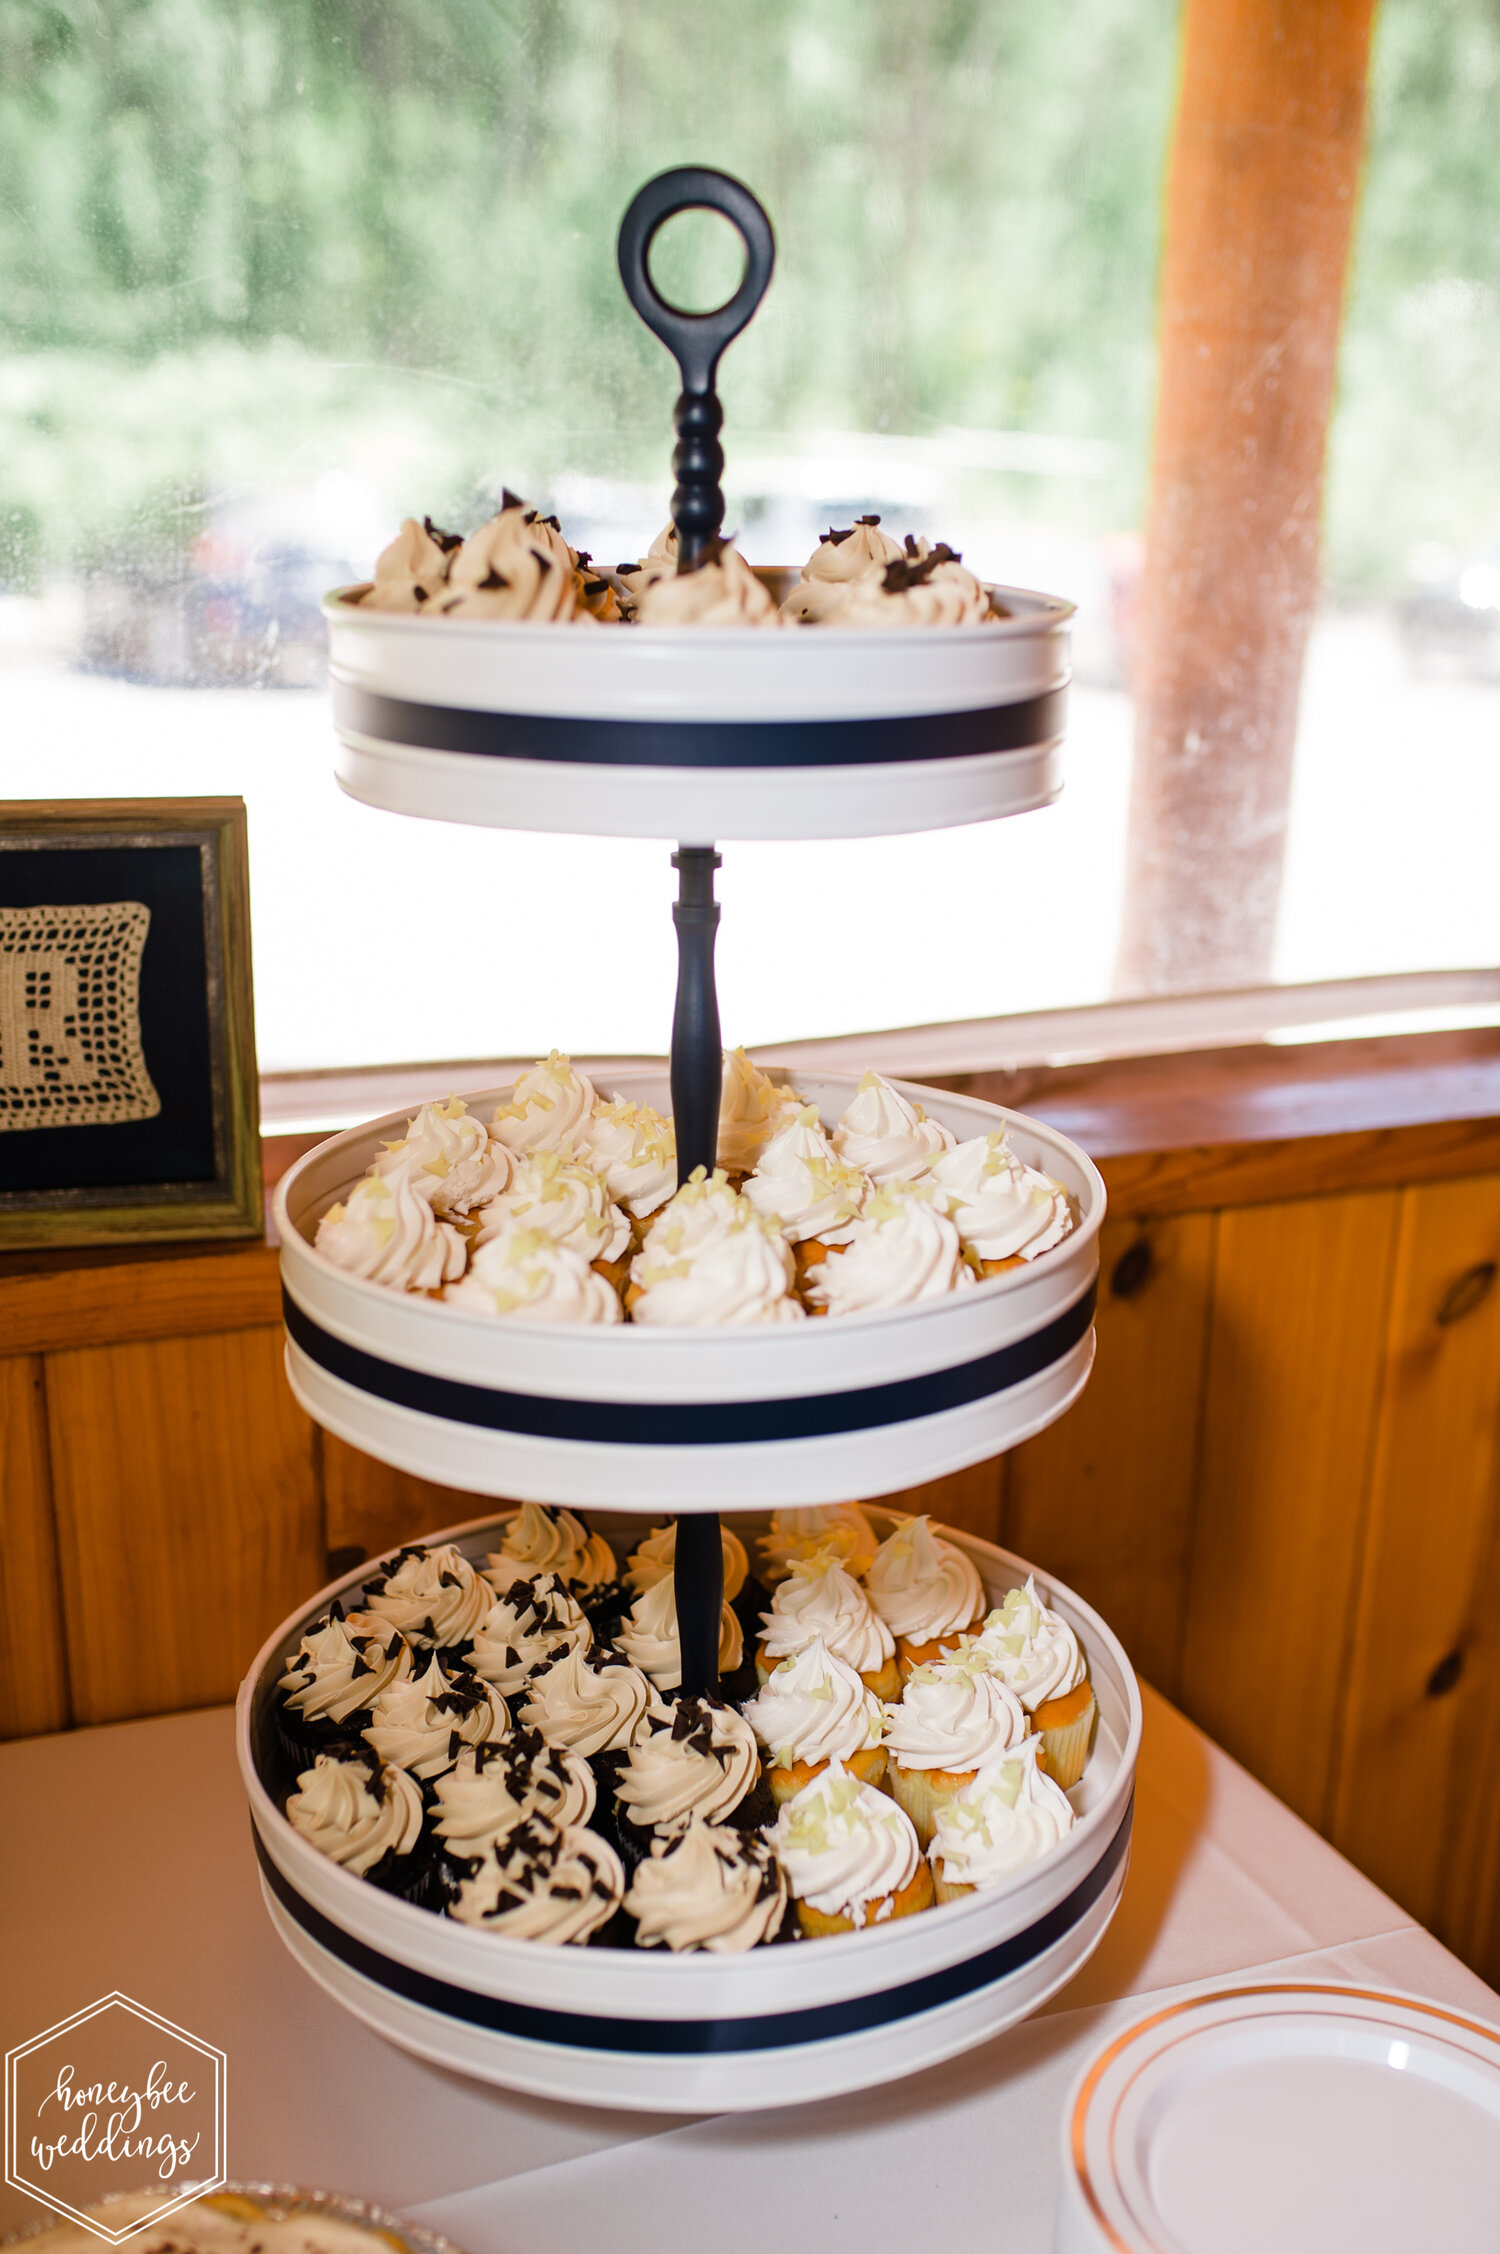 083Glacier National Park Wedding_Glacier Outdoor Center_Honeybee Weddings_Anna & Seth_July 21, 2019-2036.jpg